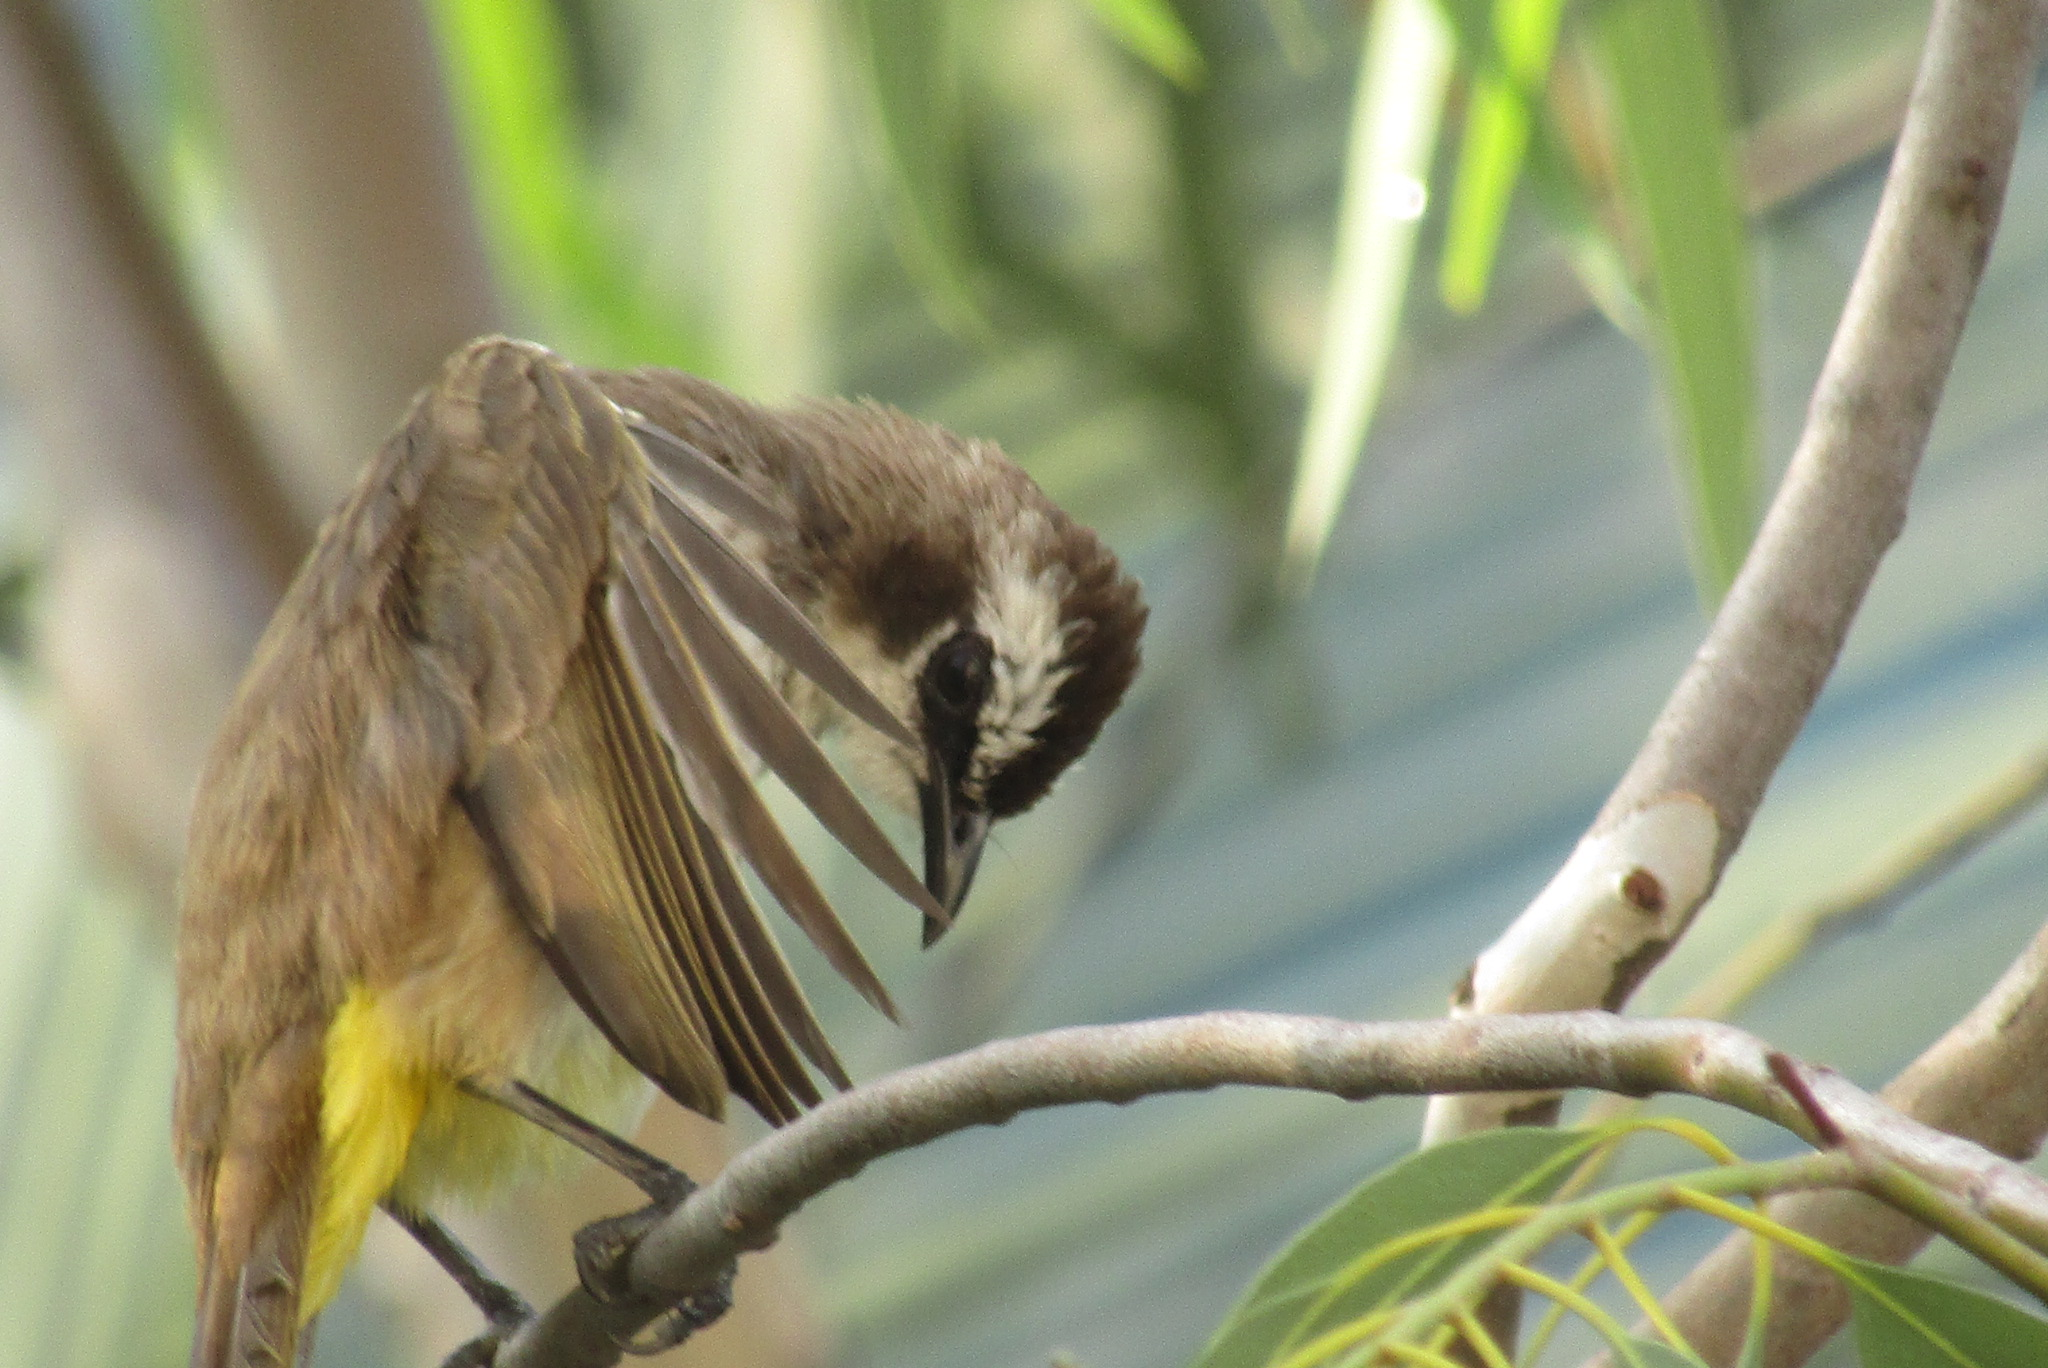 Yellow-vented Bulbul - Bulbul is Persian for nightingale. The YVB though is not the most melodic of birds.